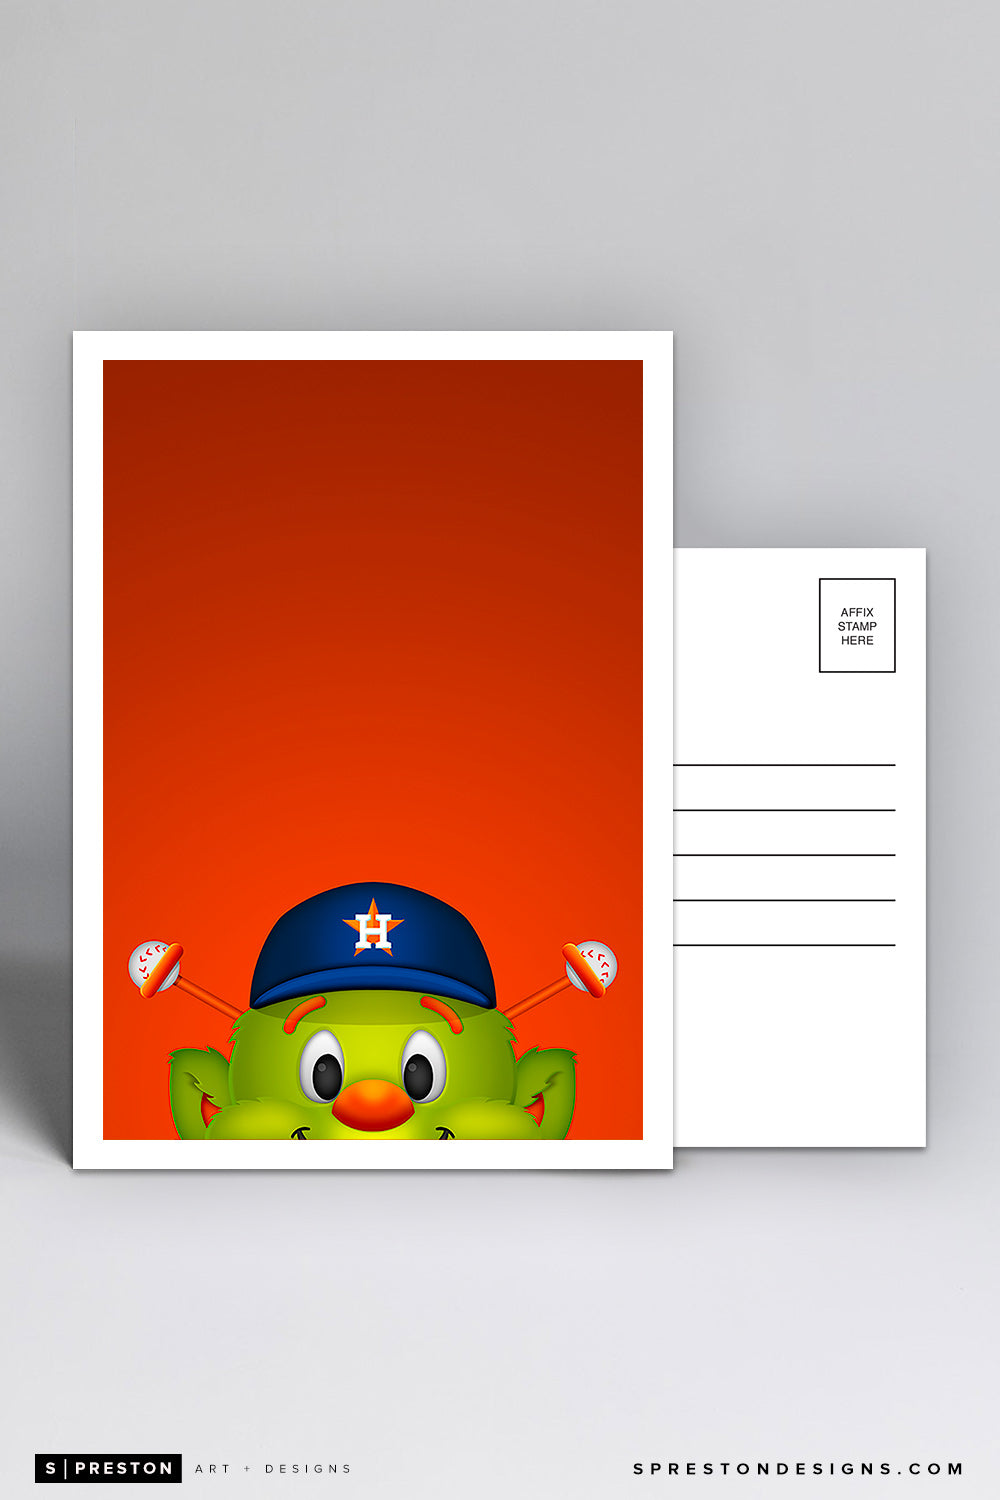 Minimalist Orbit Postcard Houston Astros Mascot